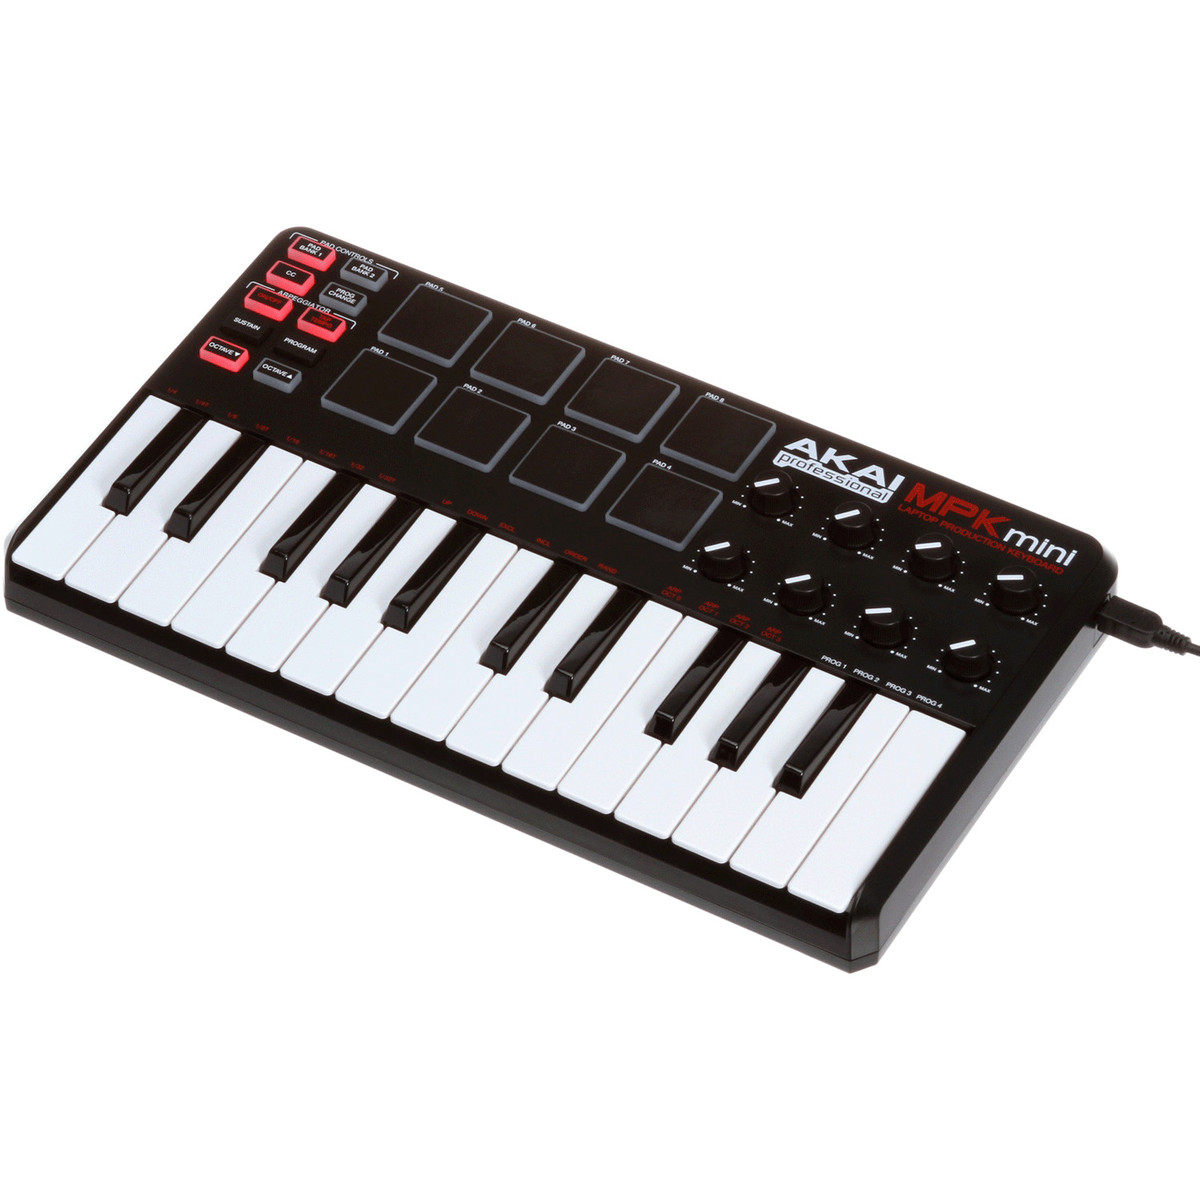 akai pro mpk mini usb midi keyboard with drum pads nearly new at gear4music